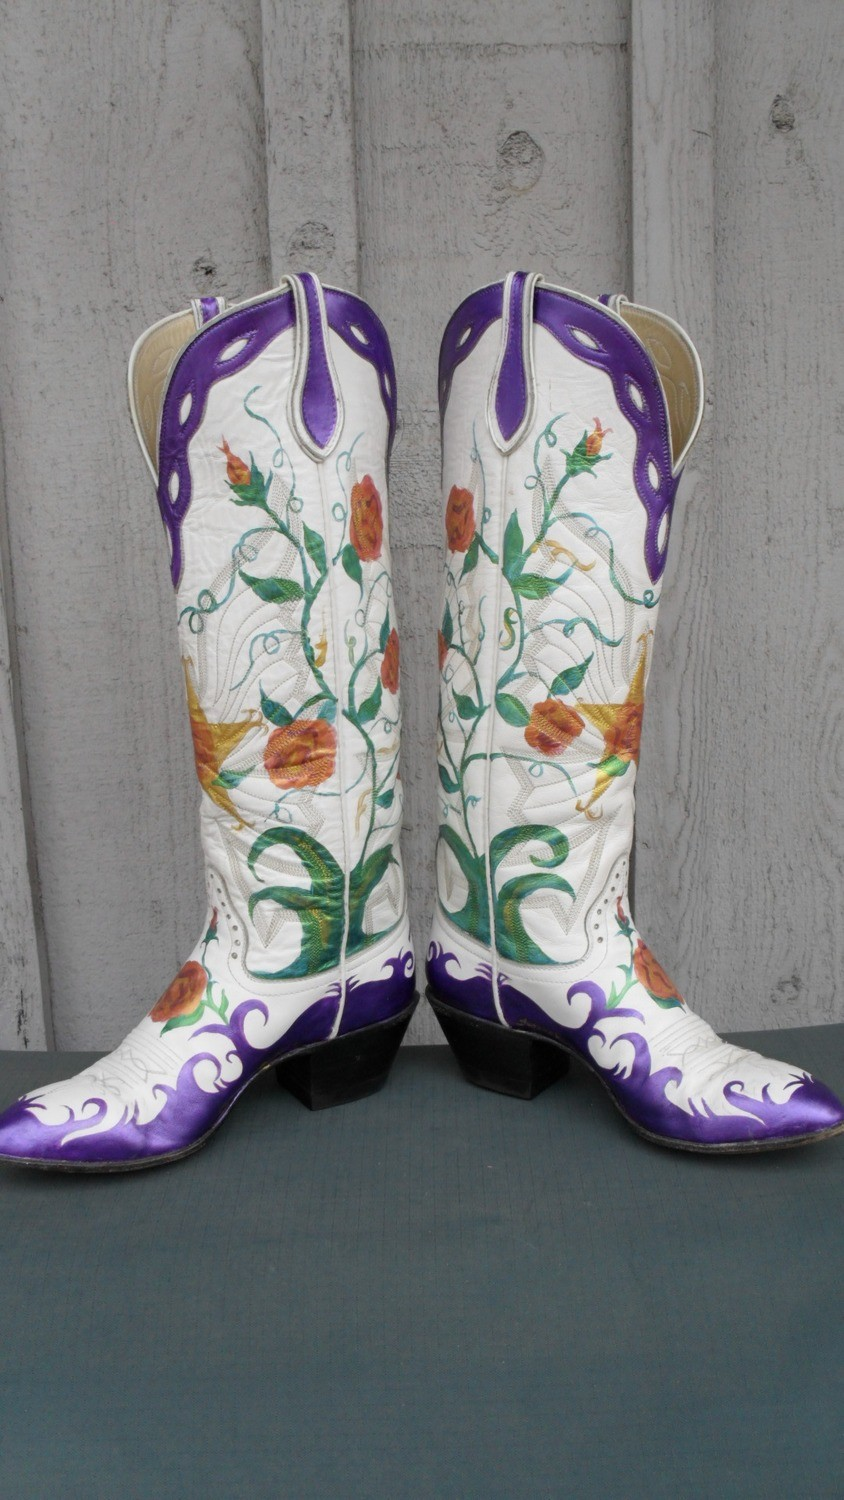 Handpainted boots with cutting edge style!